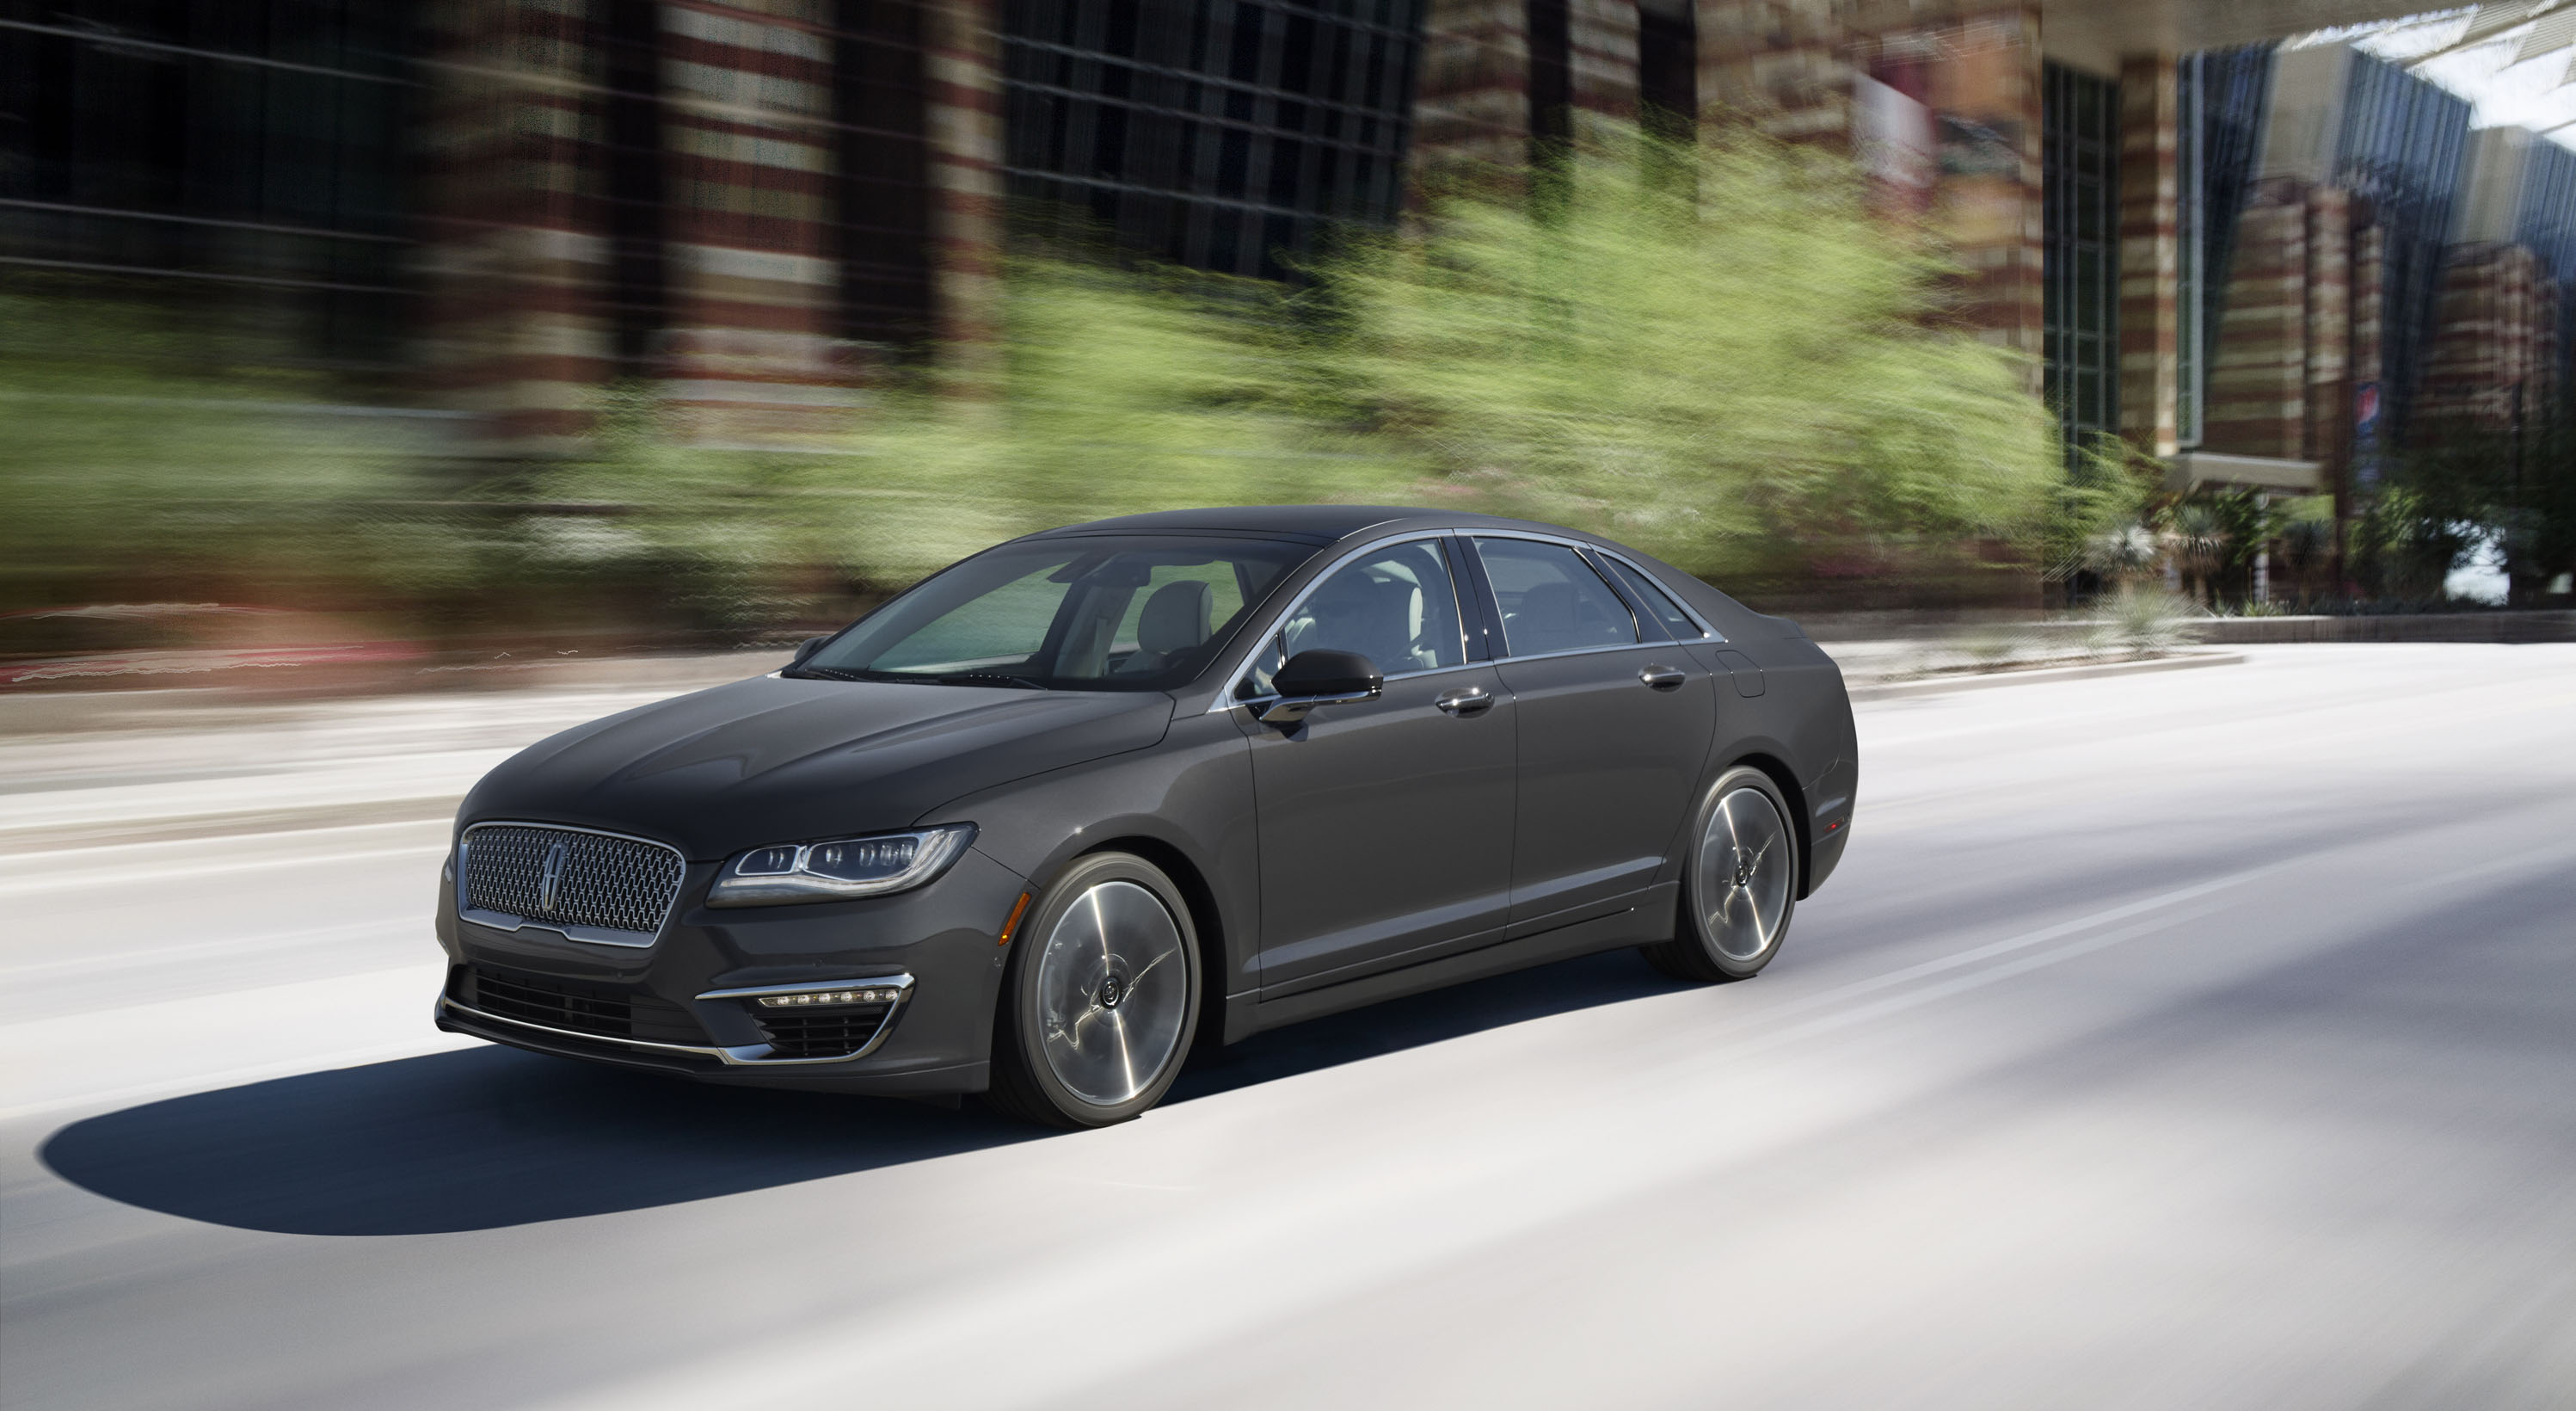 2018 Lincoln Mkz Review Ratings Specs